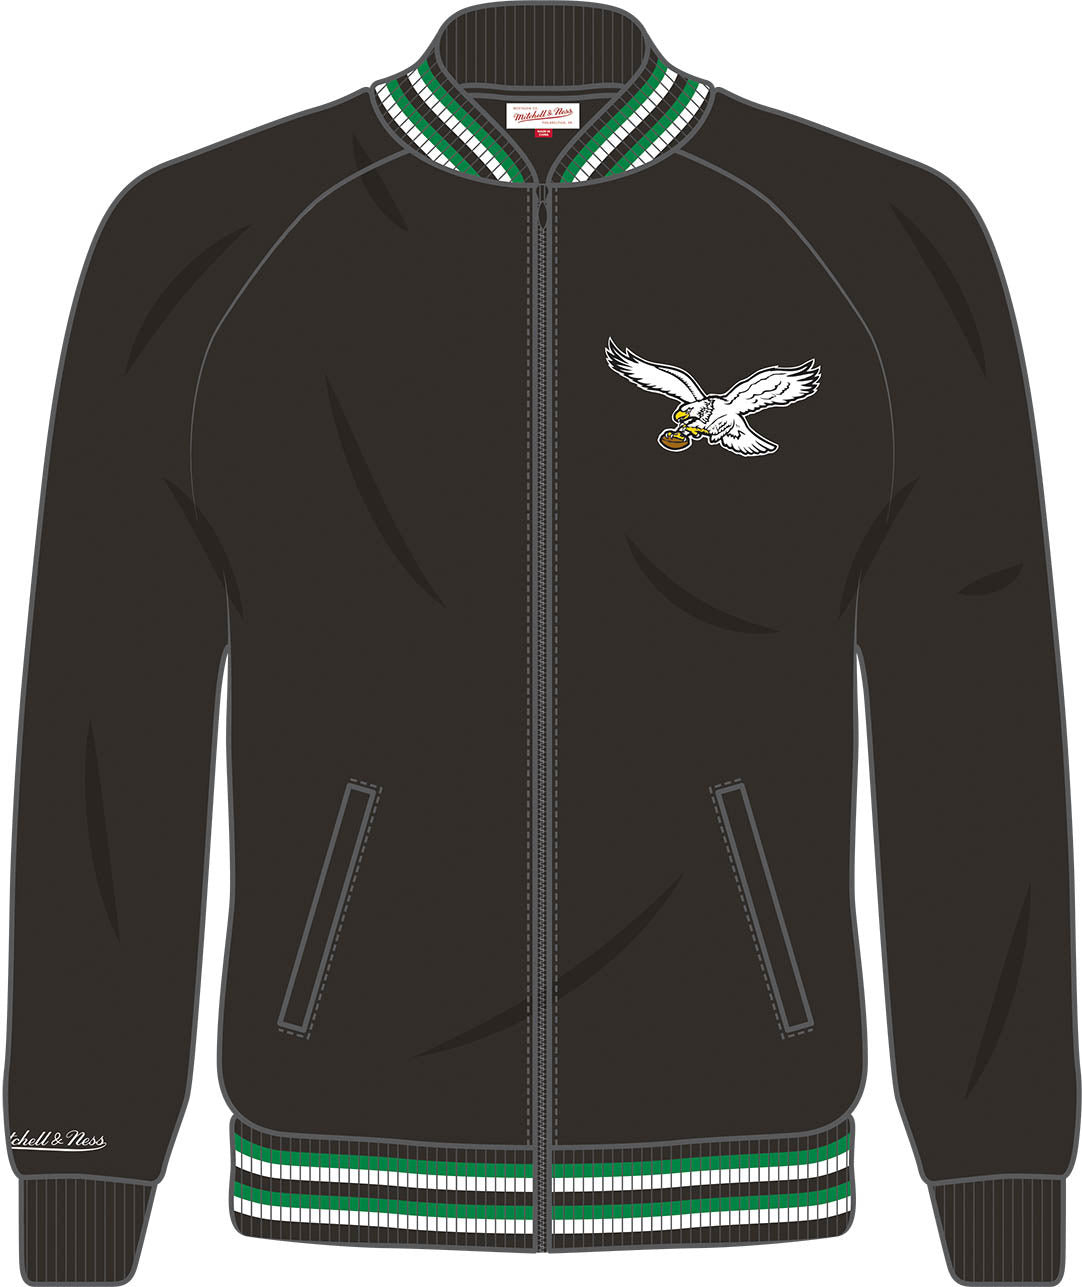 59ebd55f311 Philadelphia Eagles Top Prospect Track Jacket